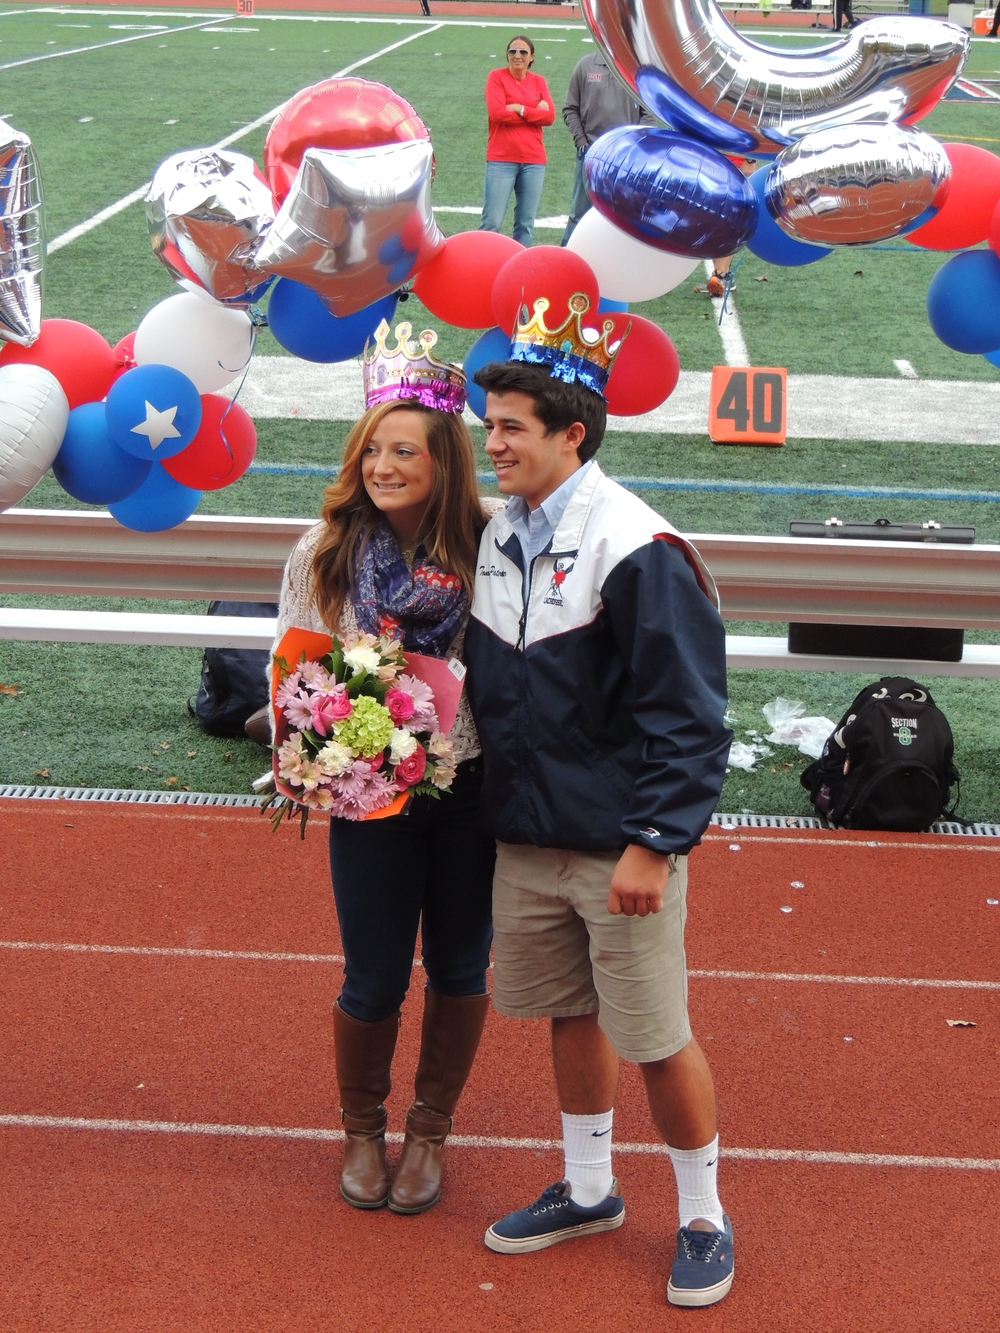 Homecoming King and Queen, Tommy Paternoster and Alicia Roy smile for pictures during Saturday's festivities at Cold Spring Harbor High School.